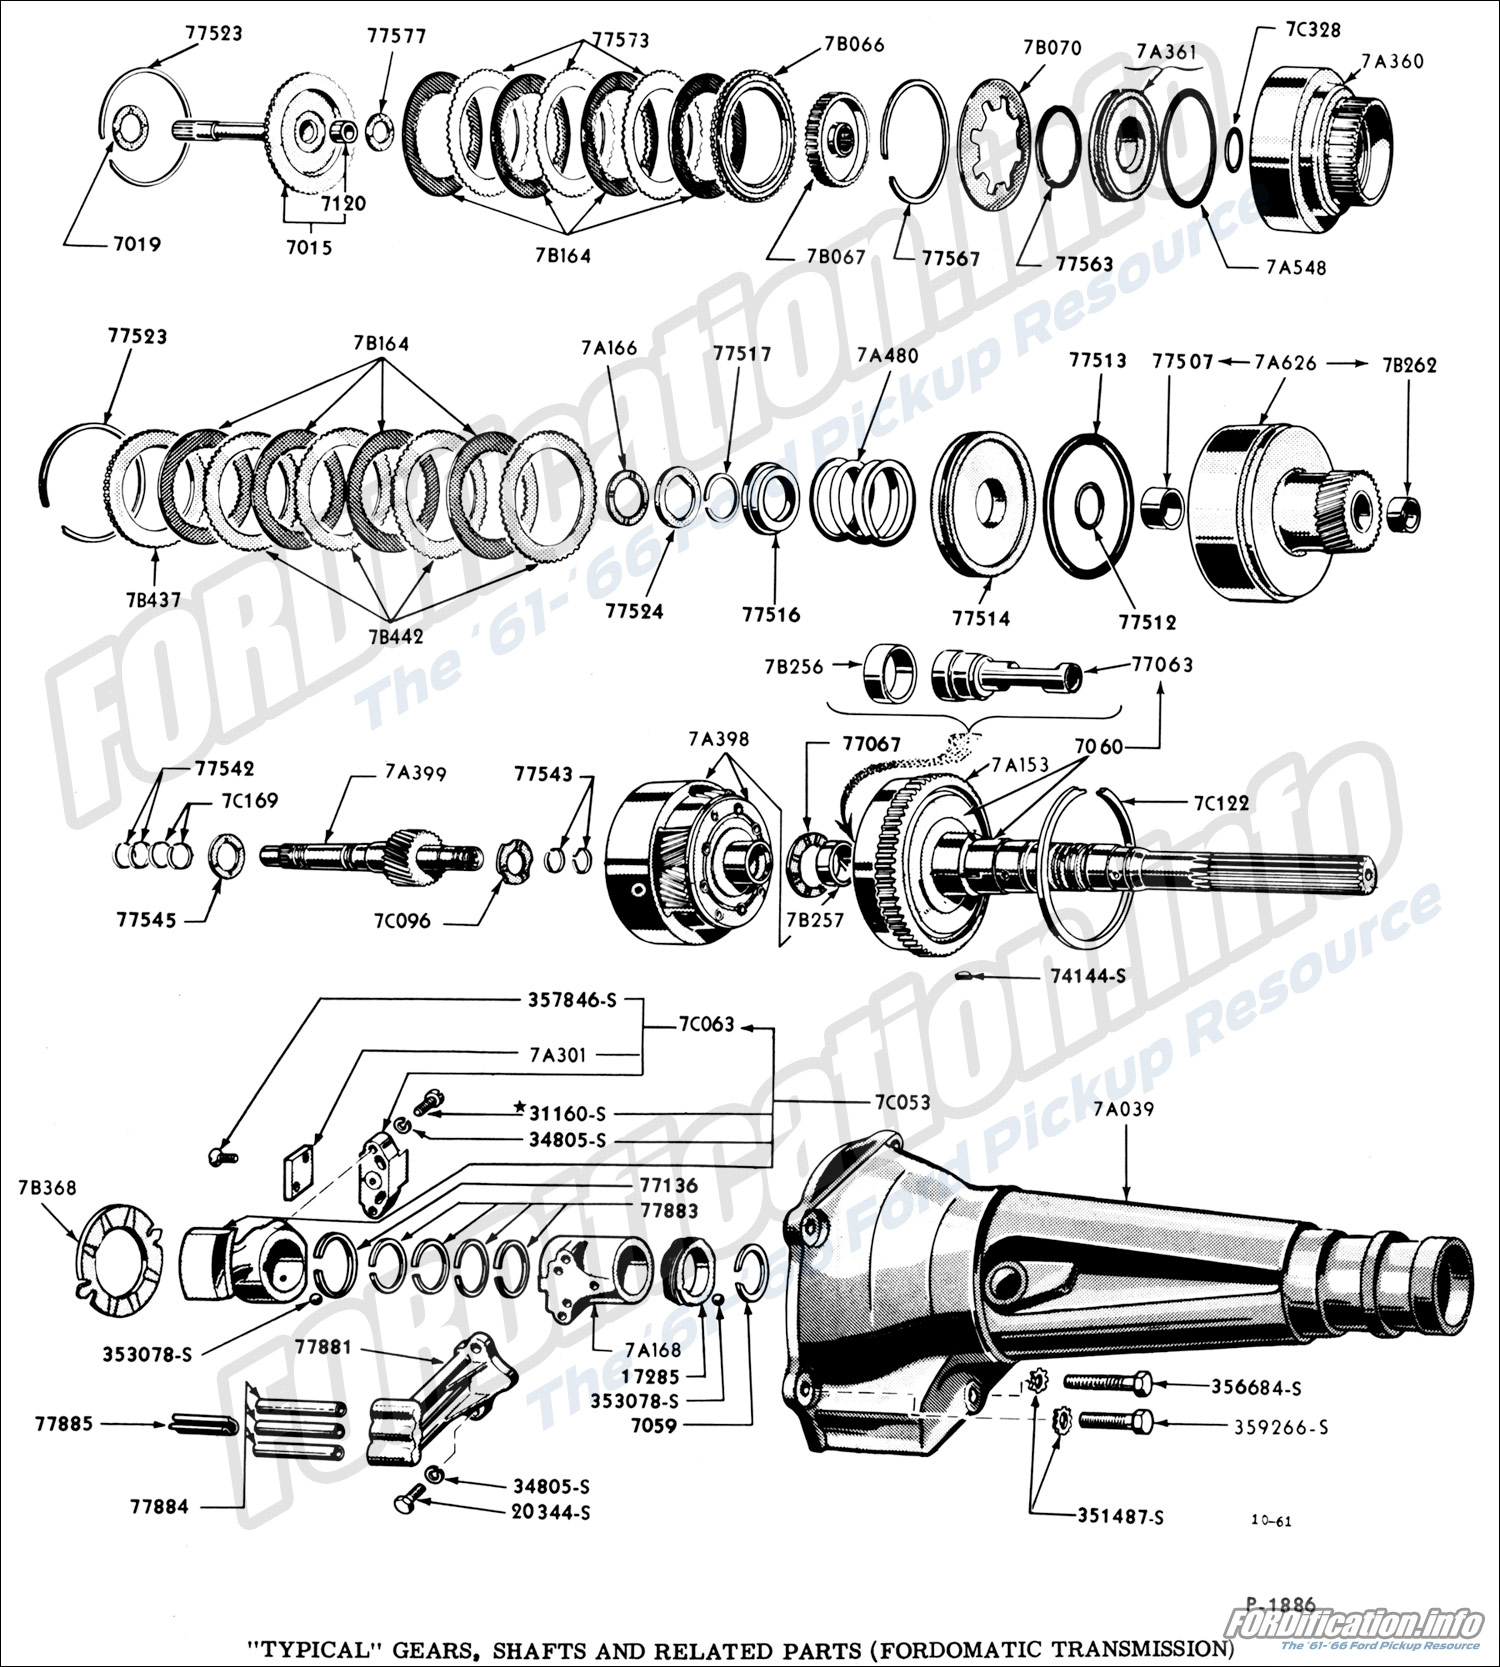 Fordomatic Transmission Diagram Manual Clutch Parts Mpc Drivetrain Schematics Fordification Info The 61 66 Ford Pickup Rh 1963